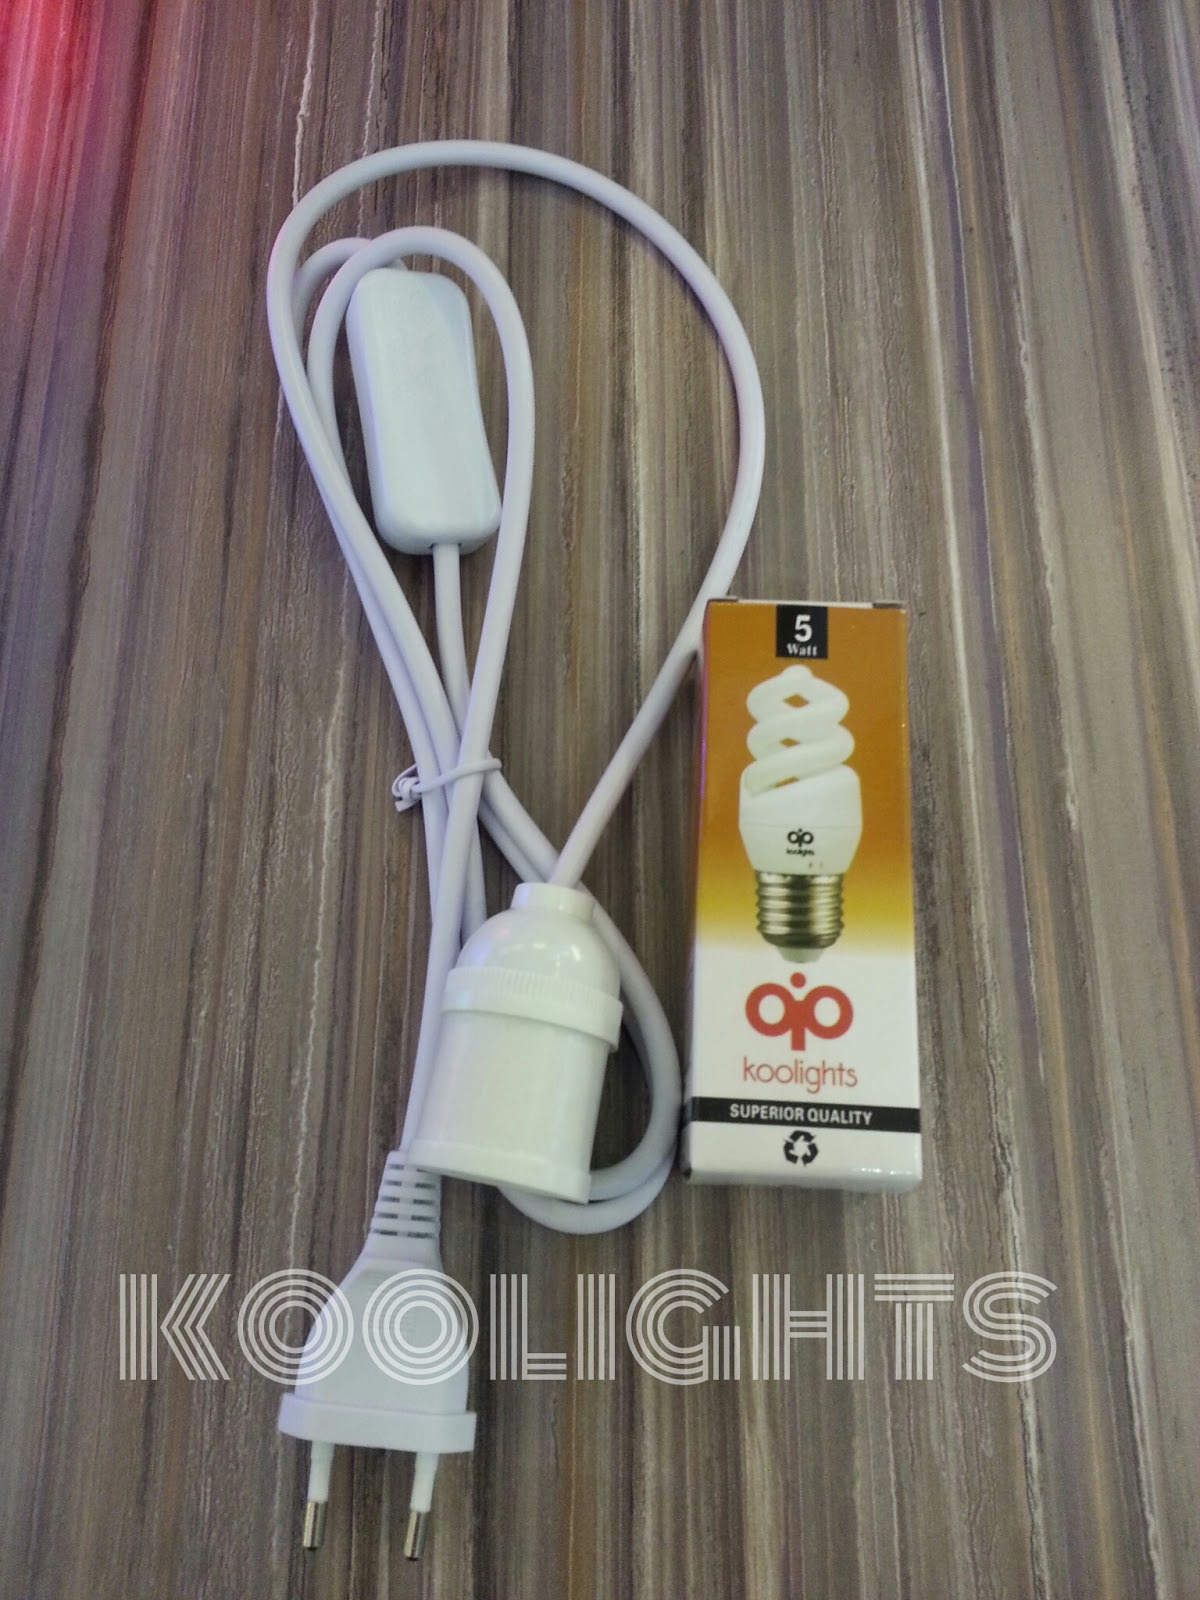 Koolights lamps diy koolights koolights korea luvalamptable lamp iq lamp iq light keyboard keysfo Image collections